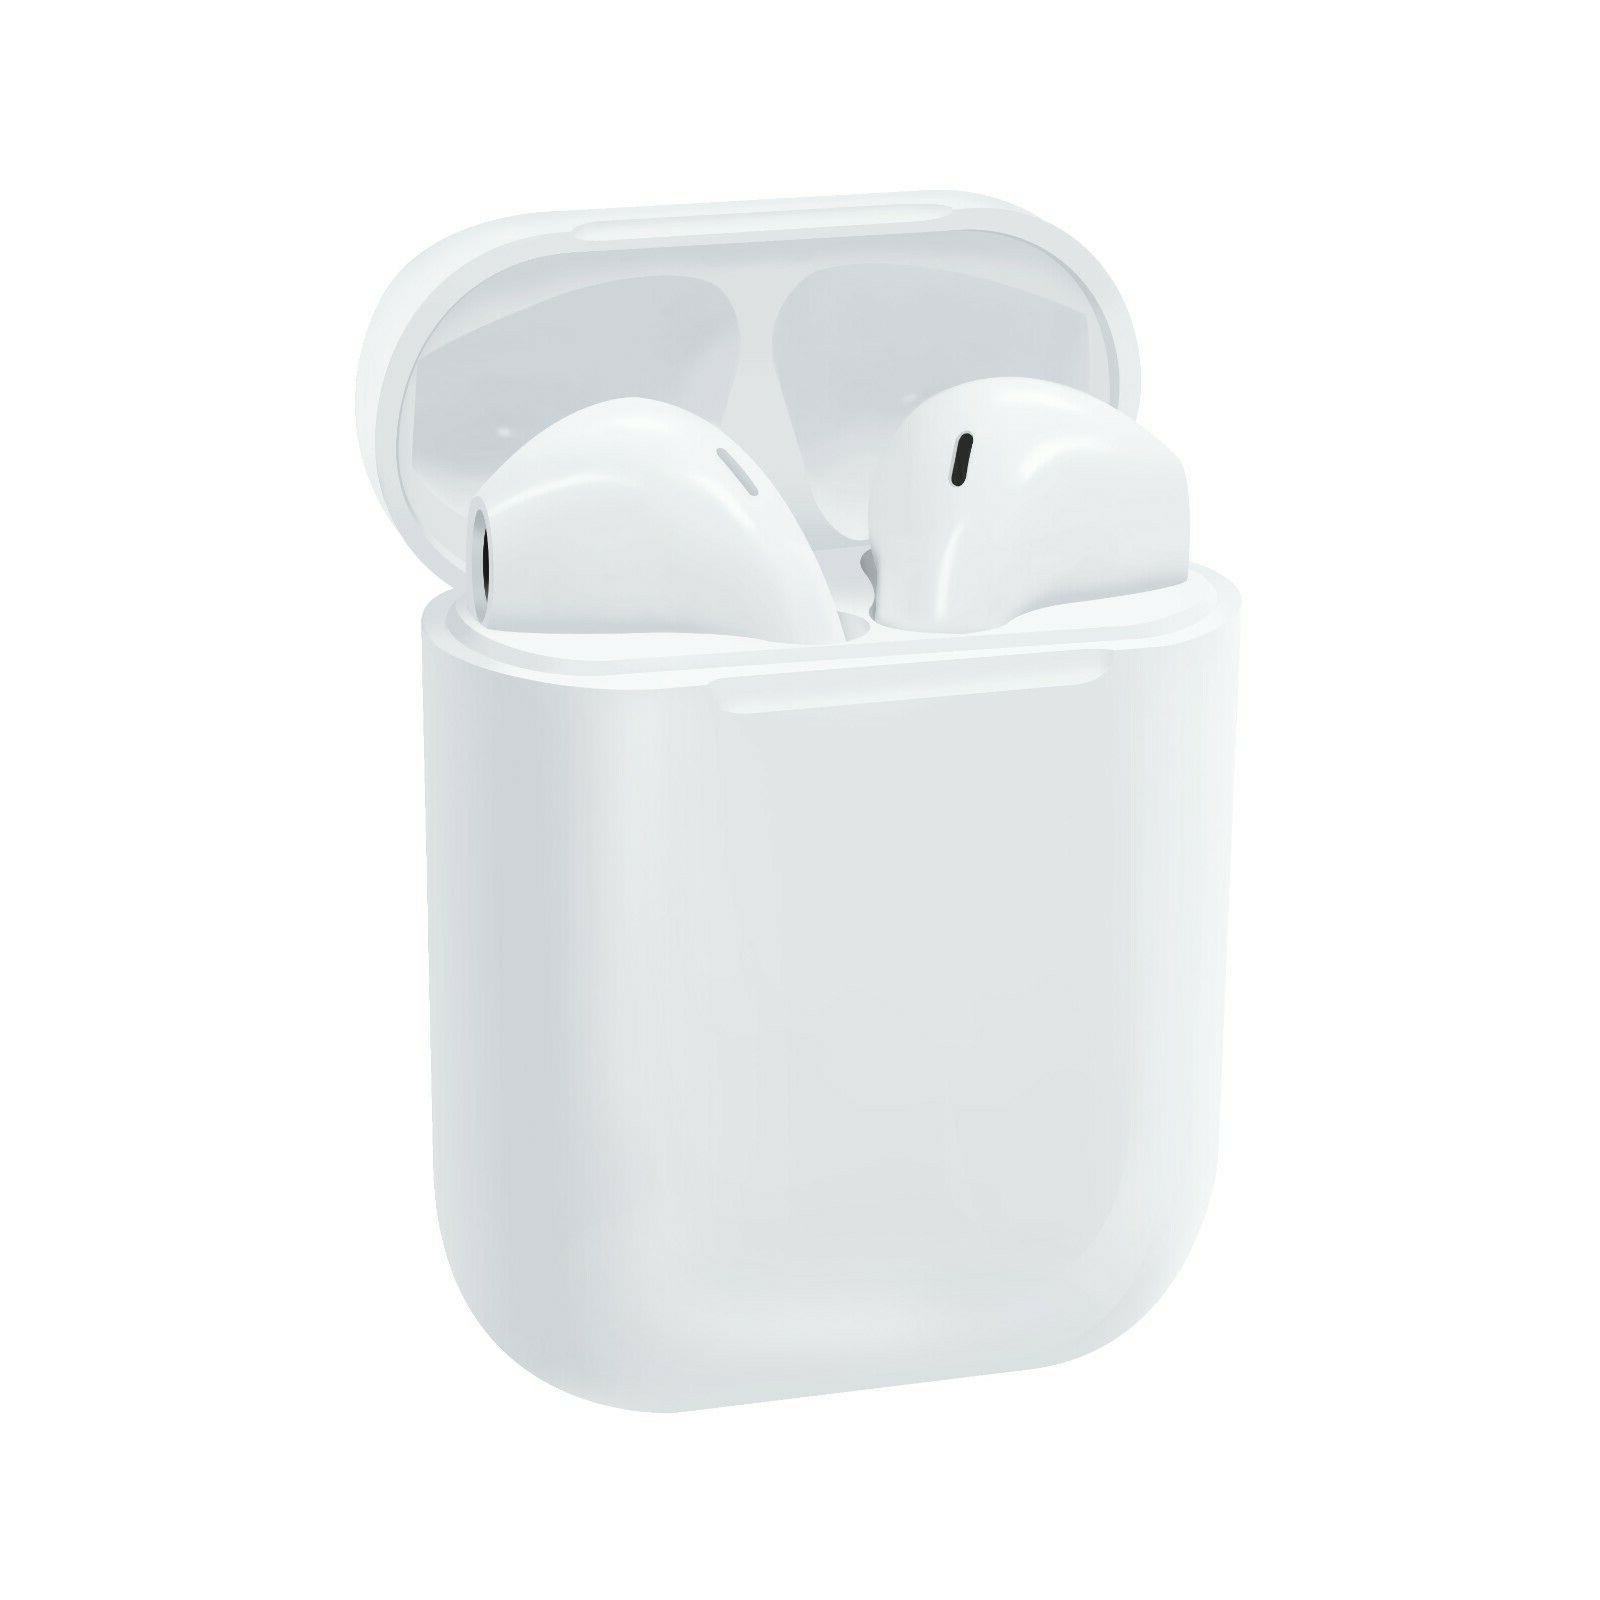 Wireless Headphones Compatible with Apple iPhone